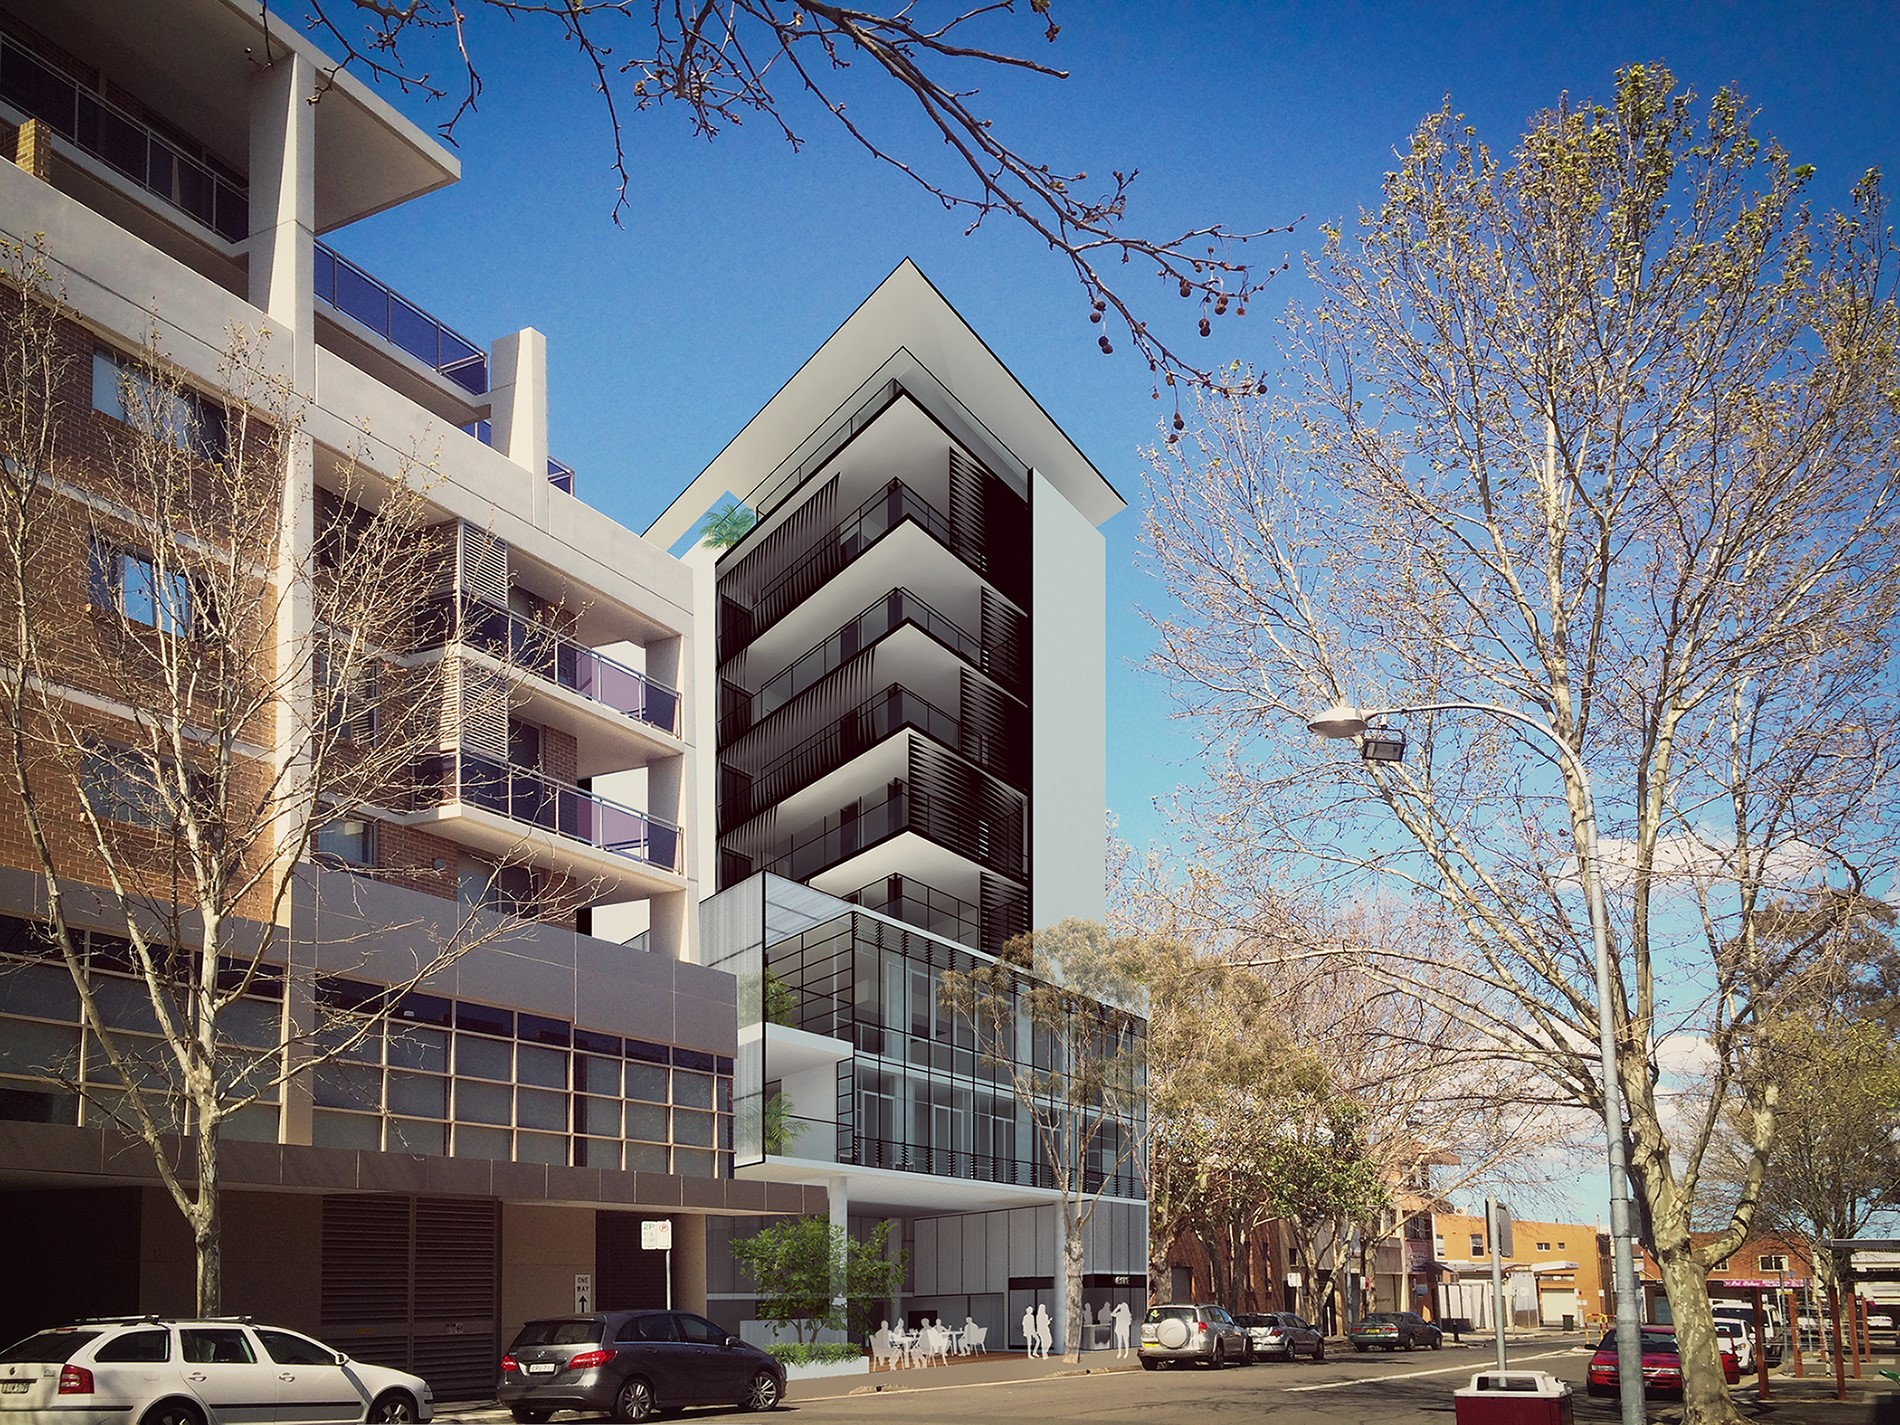 charles_tang_design_bankstown_mixed_tower